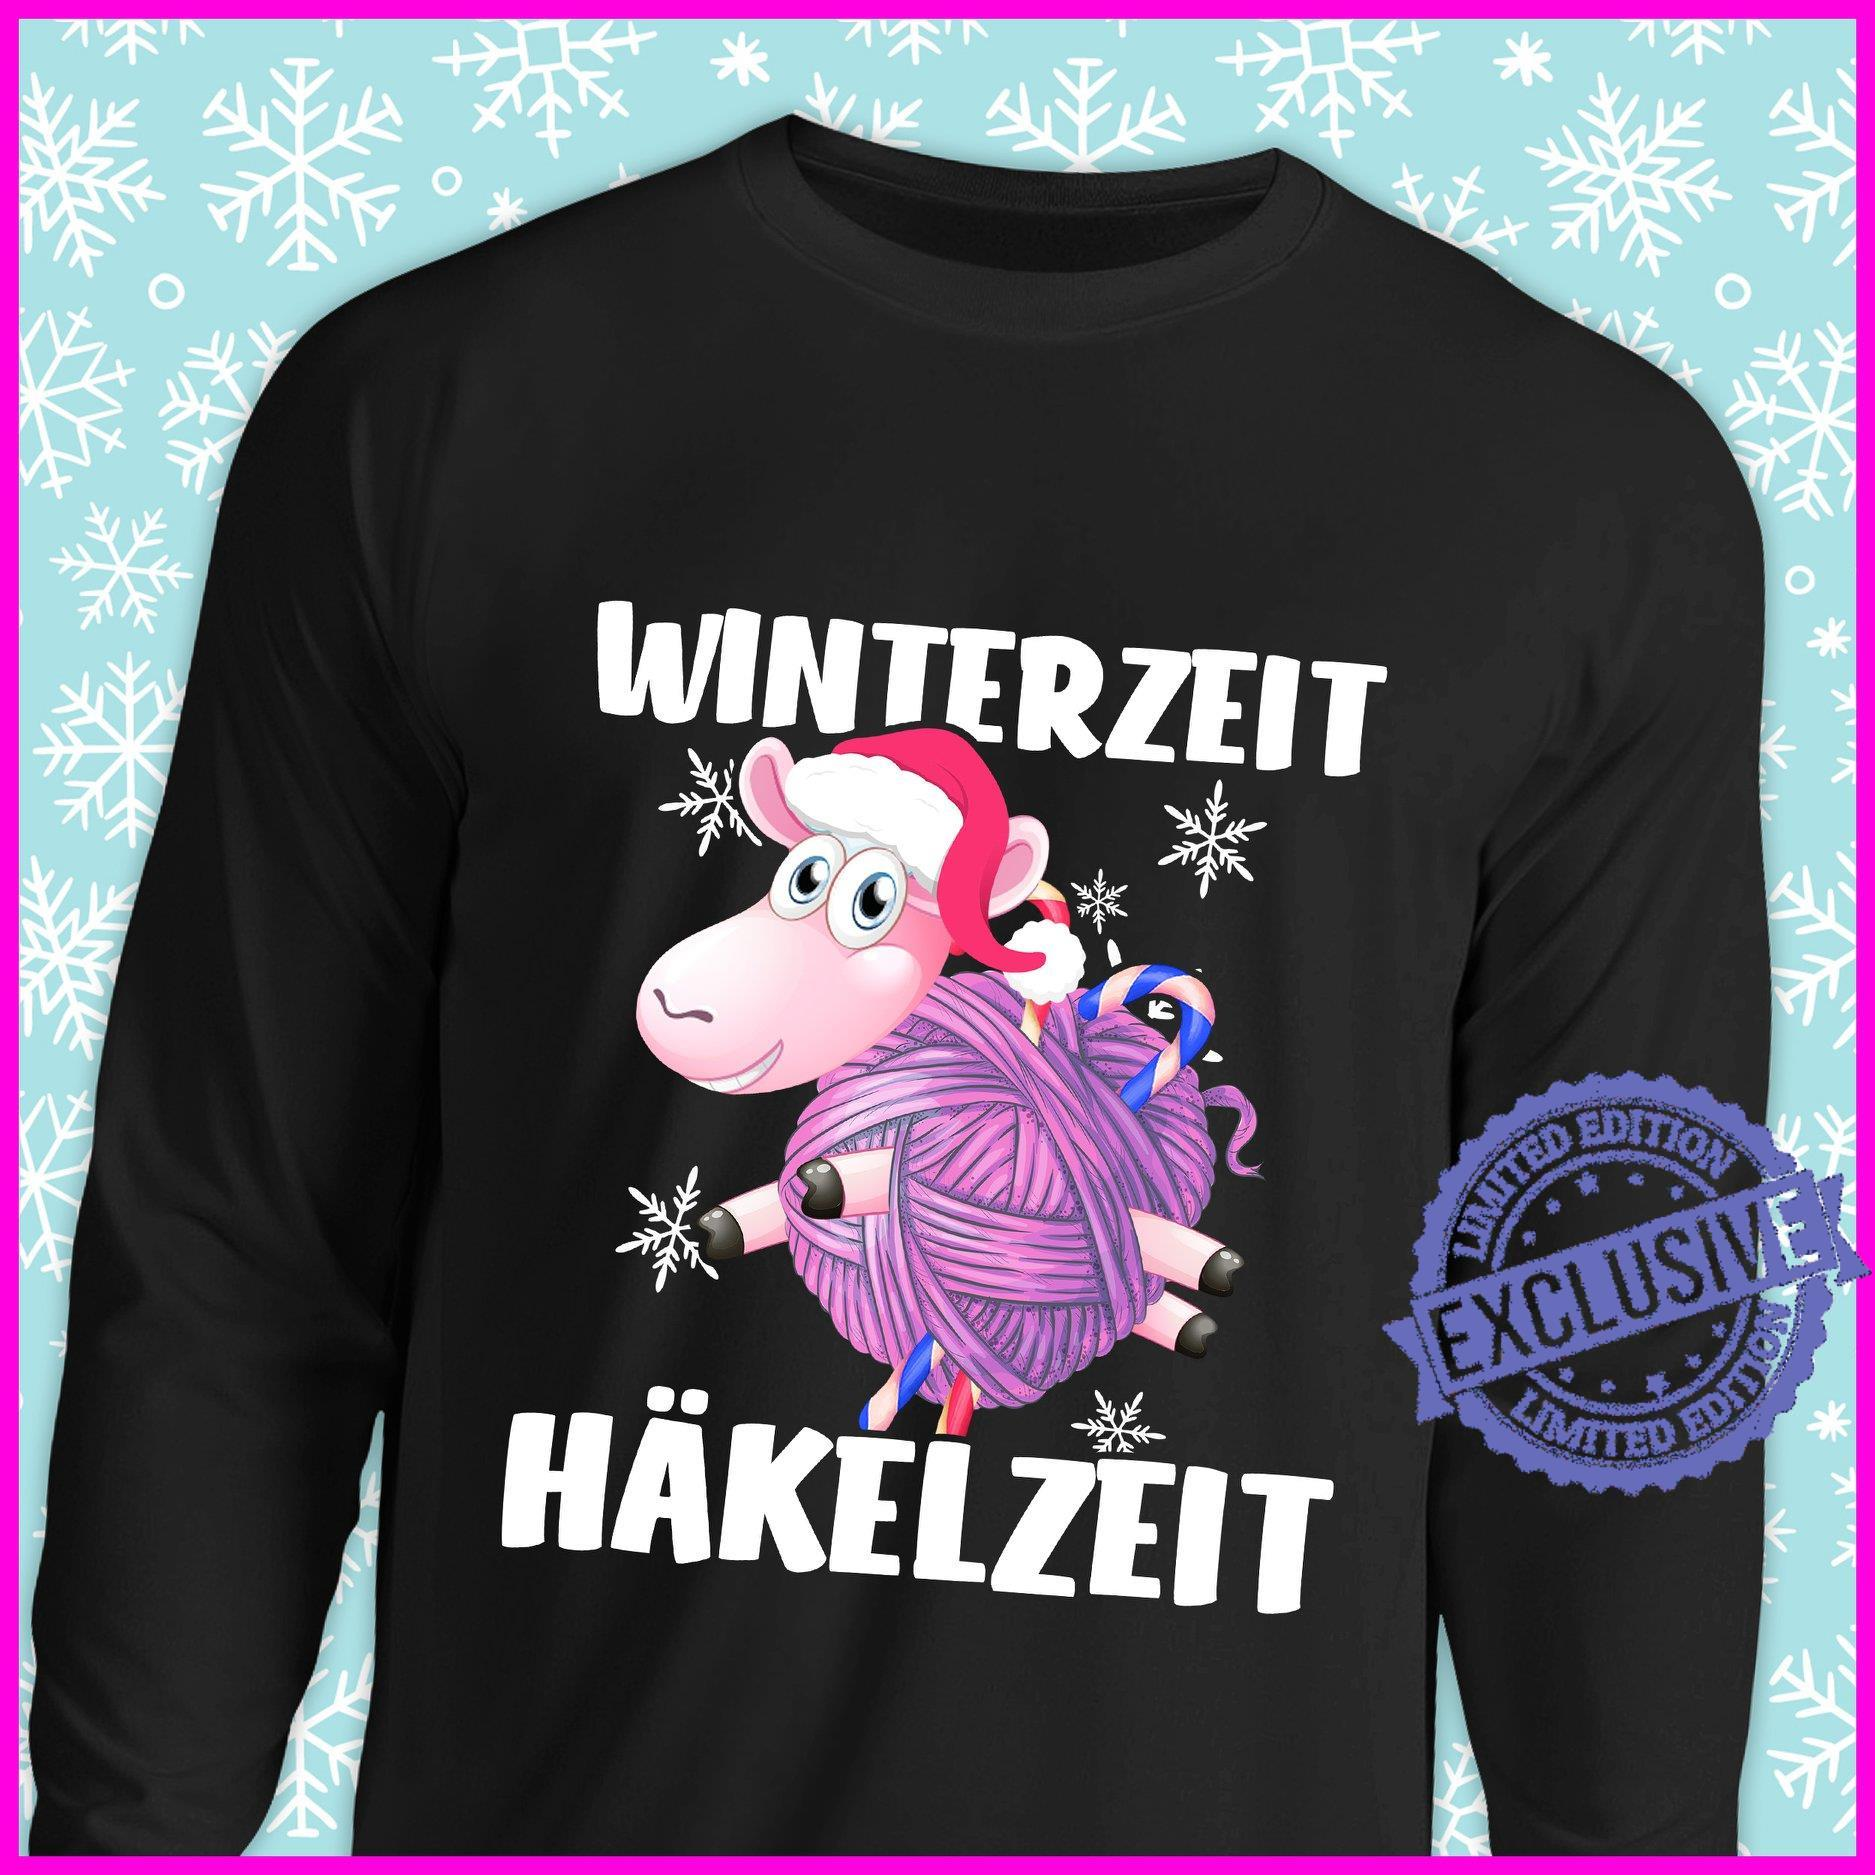 Winterzeit hakelzeit shirt